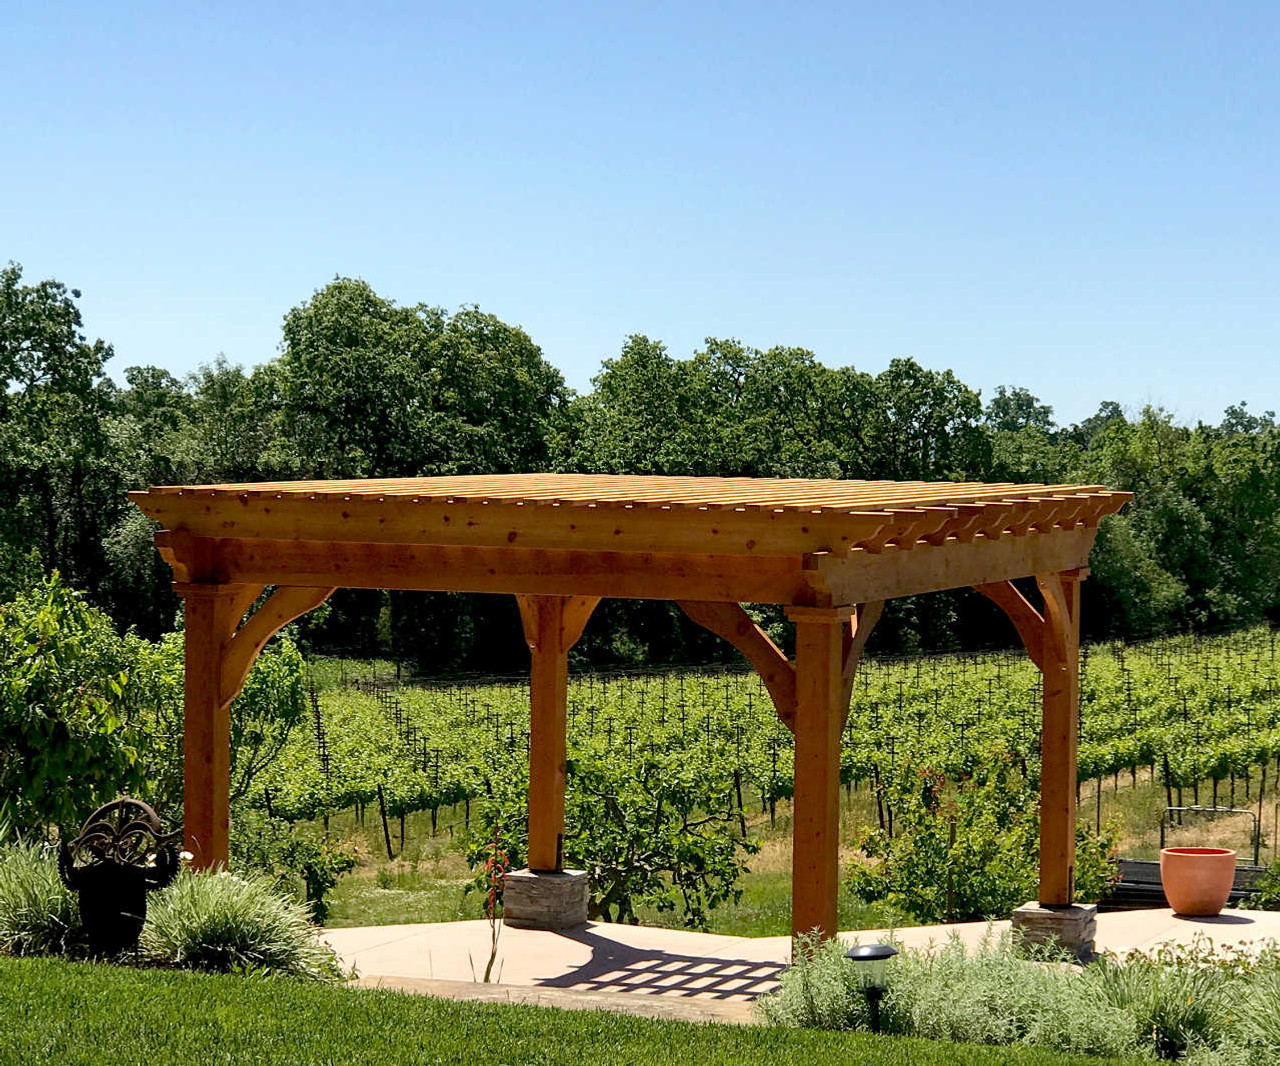 "Homestead Pergola Kit  12'-8"" x 16'-8"", tailed beams on outside of columns, corner braces rather than column top decorative molding, 3x10 rafters (rather than 3x8) at 24"" on center, 2x4 top runners at 8"" on center, all timber planed smooth, clear sealant, assembled in Santa Rosa, California."